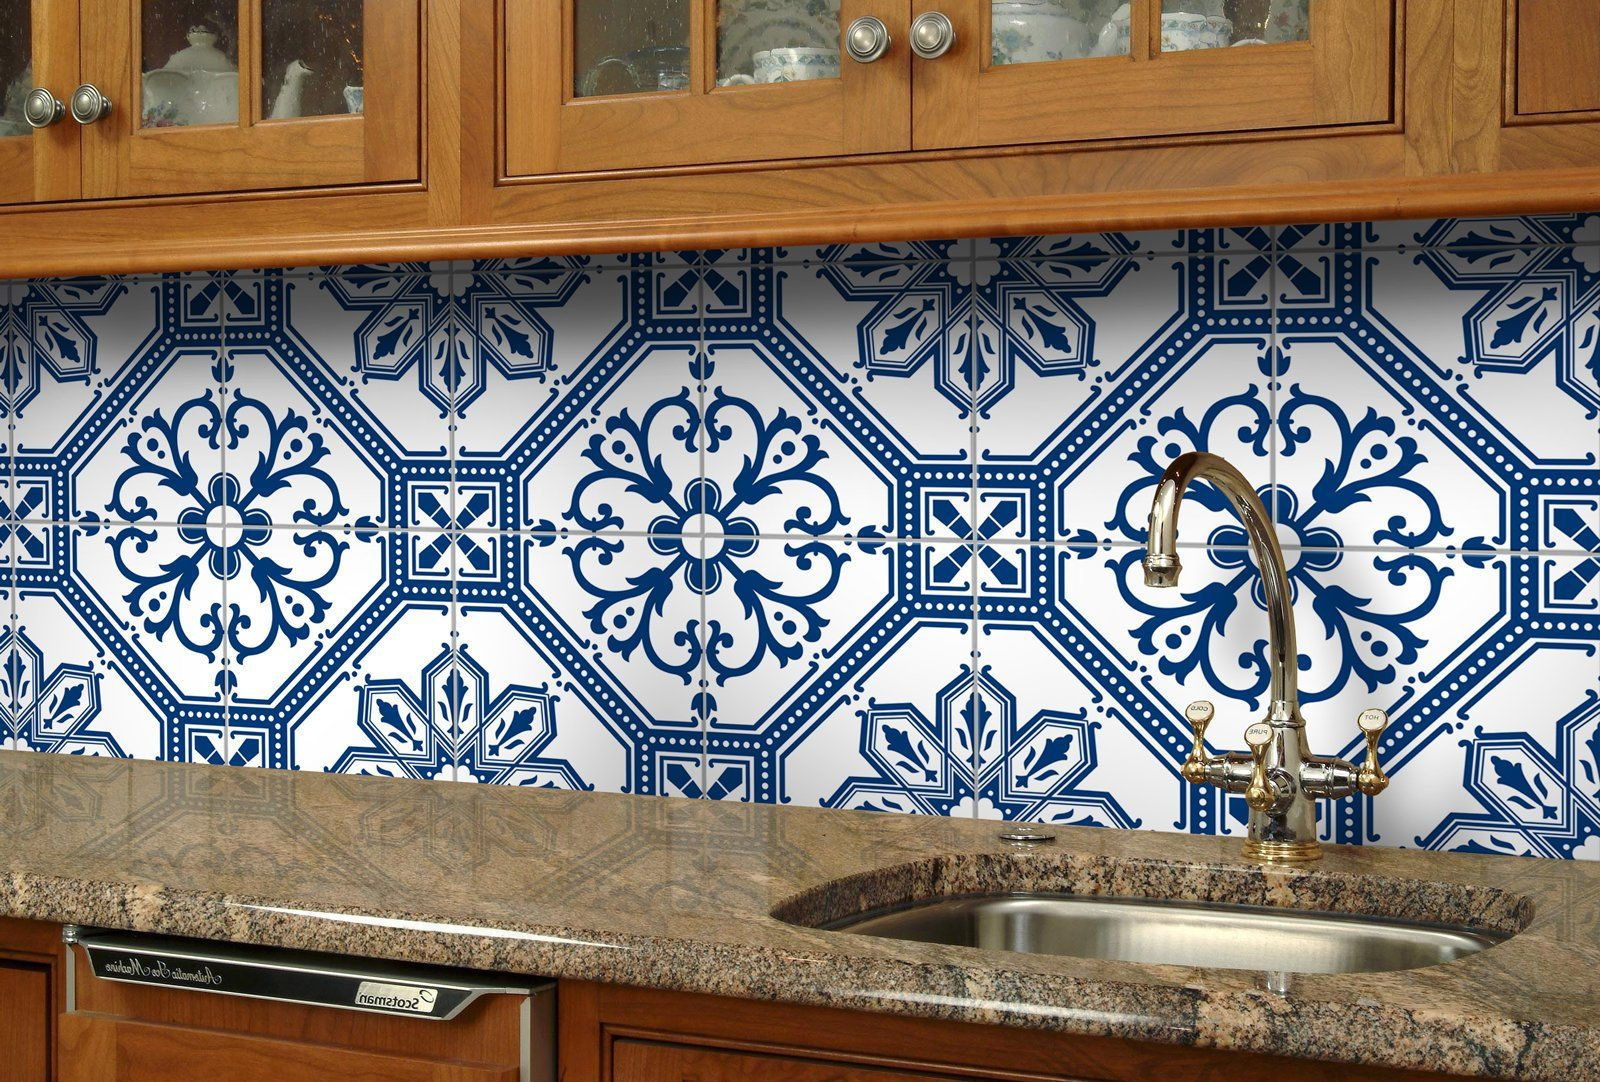 Tile Stickers Tile Decals For Kitchen Bathroom Wall Or Backsplash Waterproof And R Diy Kitchen Backsplash Blue Tile Backsplash Backsplash For White Cabinets